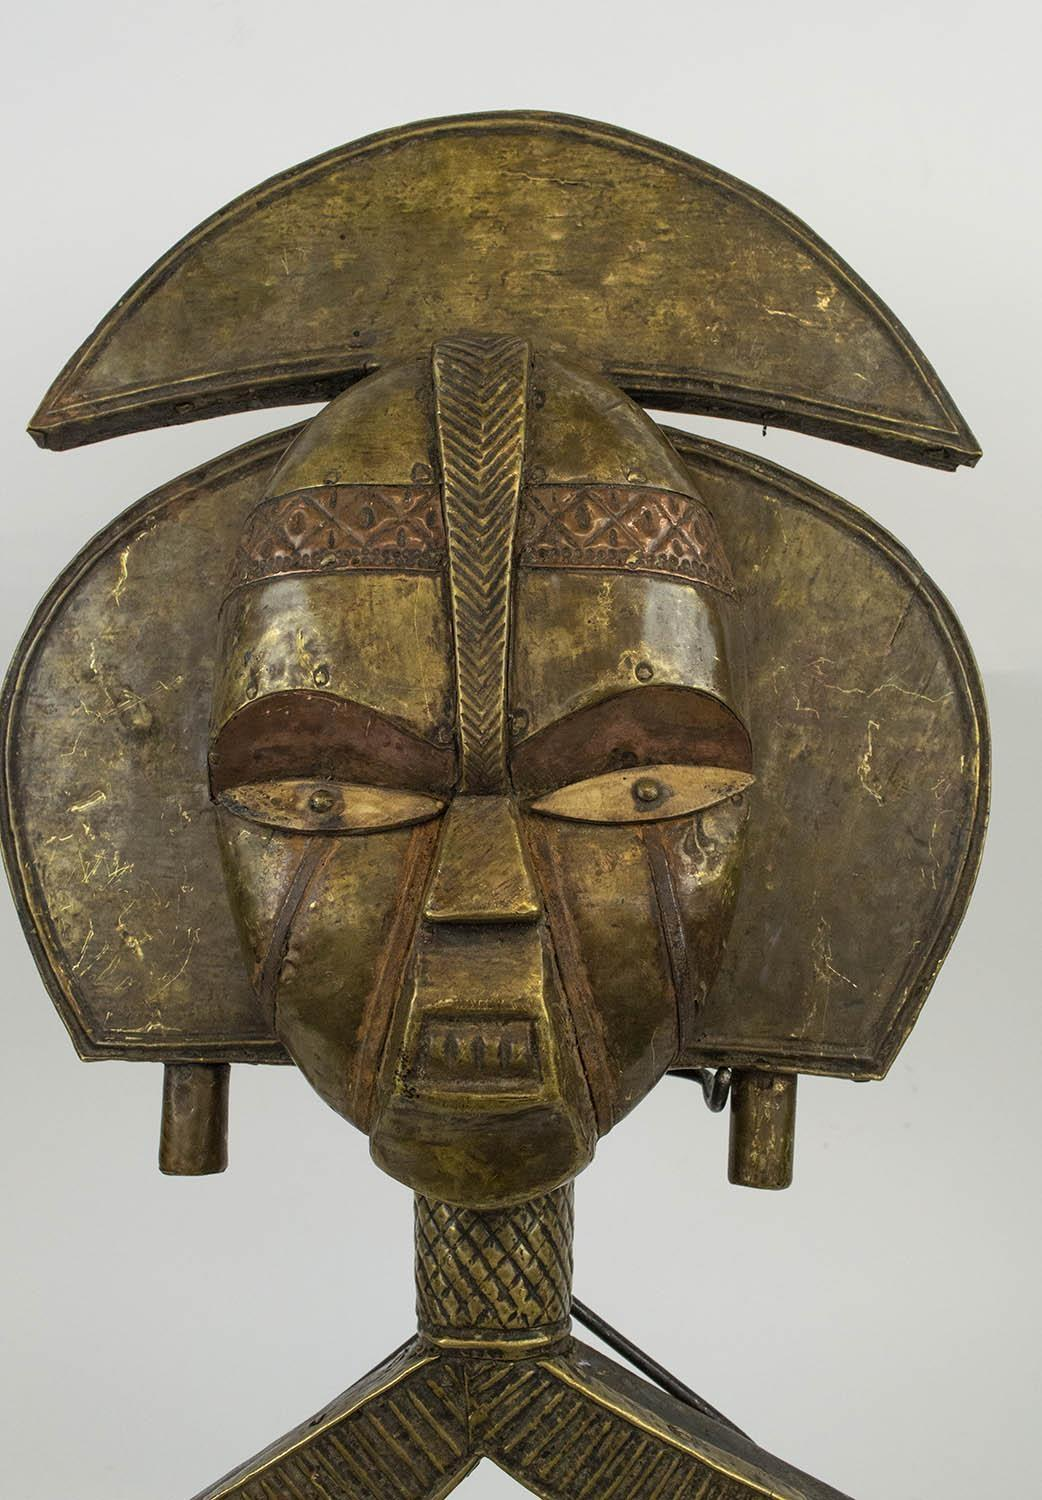 BAKOHA RELIQUARY FIGURE, from Gabon wood, copper and brass, 60cm H. - Image 4 of 4